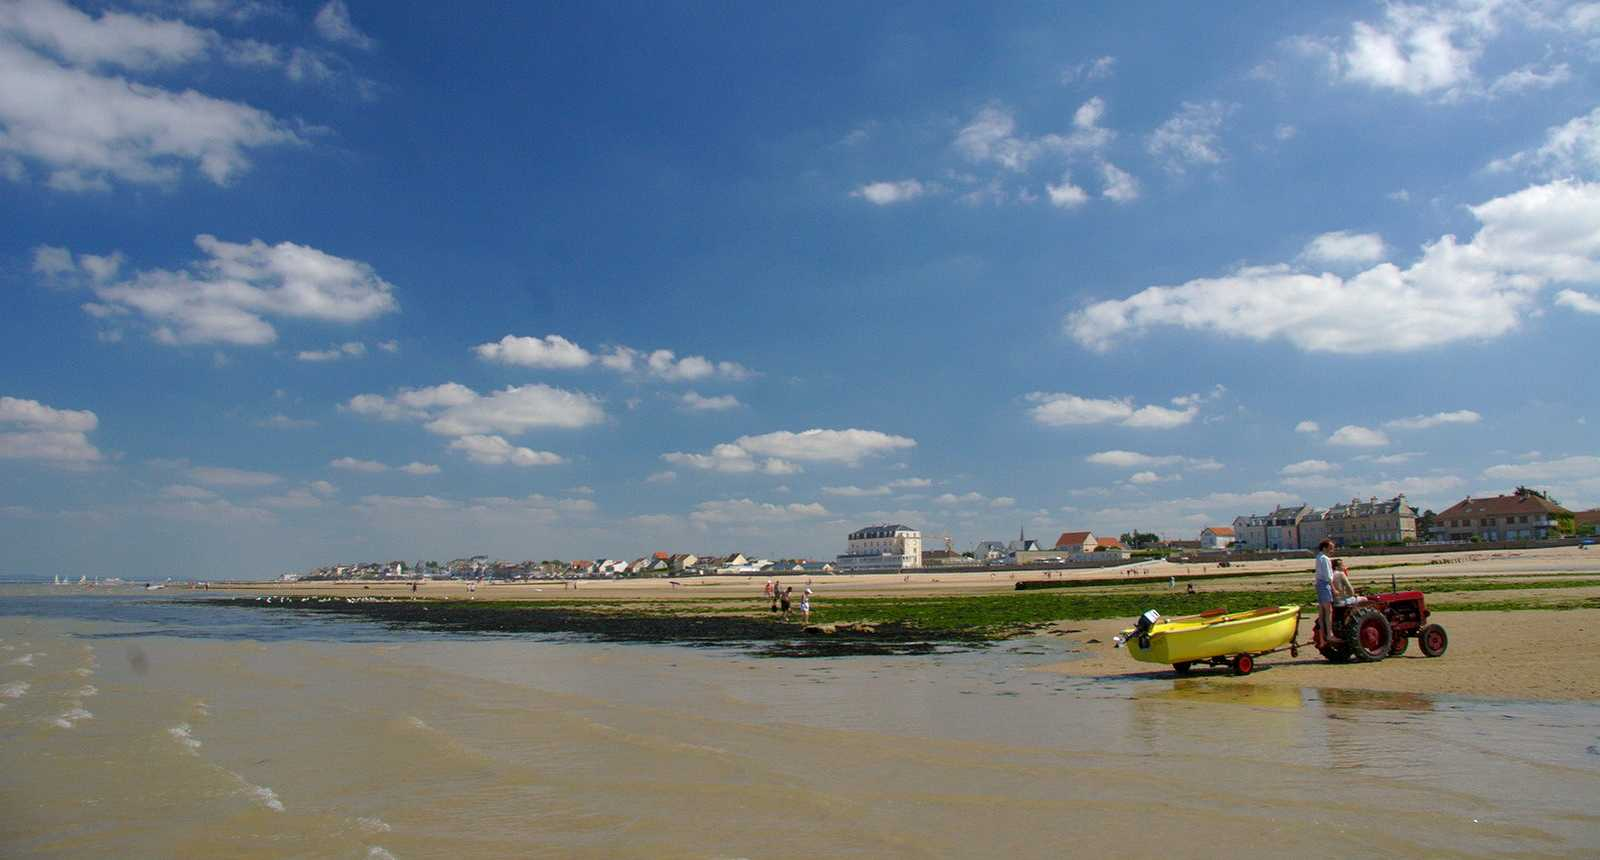 Photo plage de saint aubin sur mer 2220 diaporamas - Office de tourisme la plaine sur mer ...